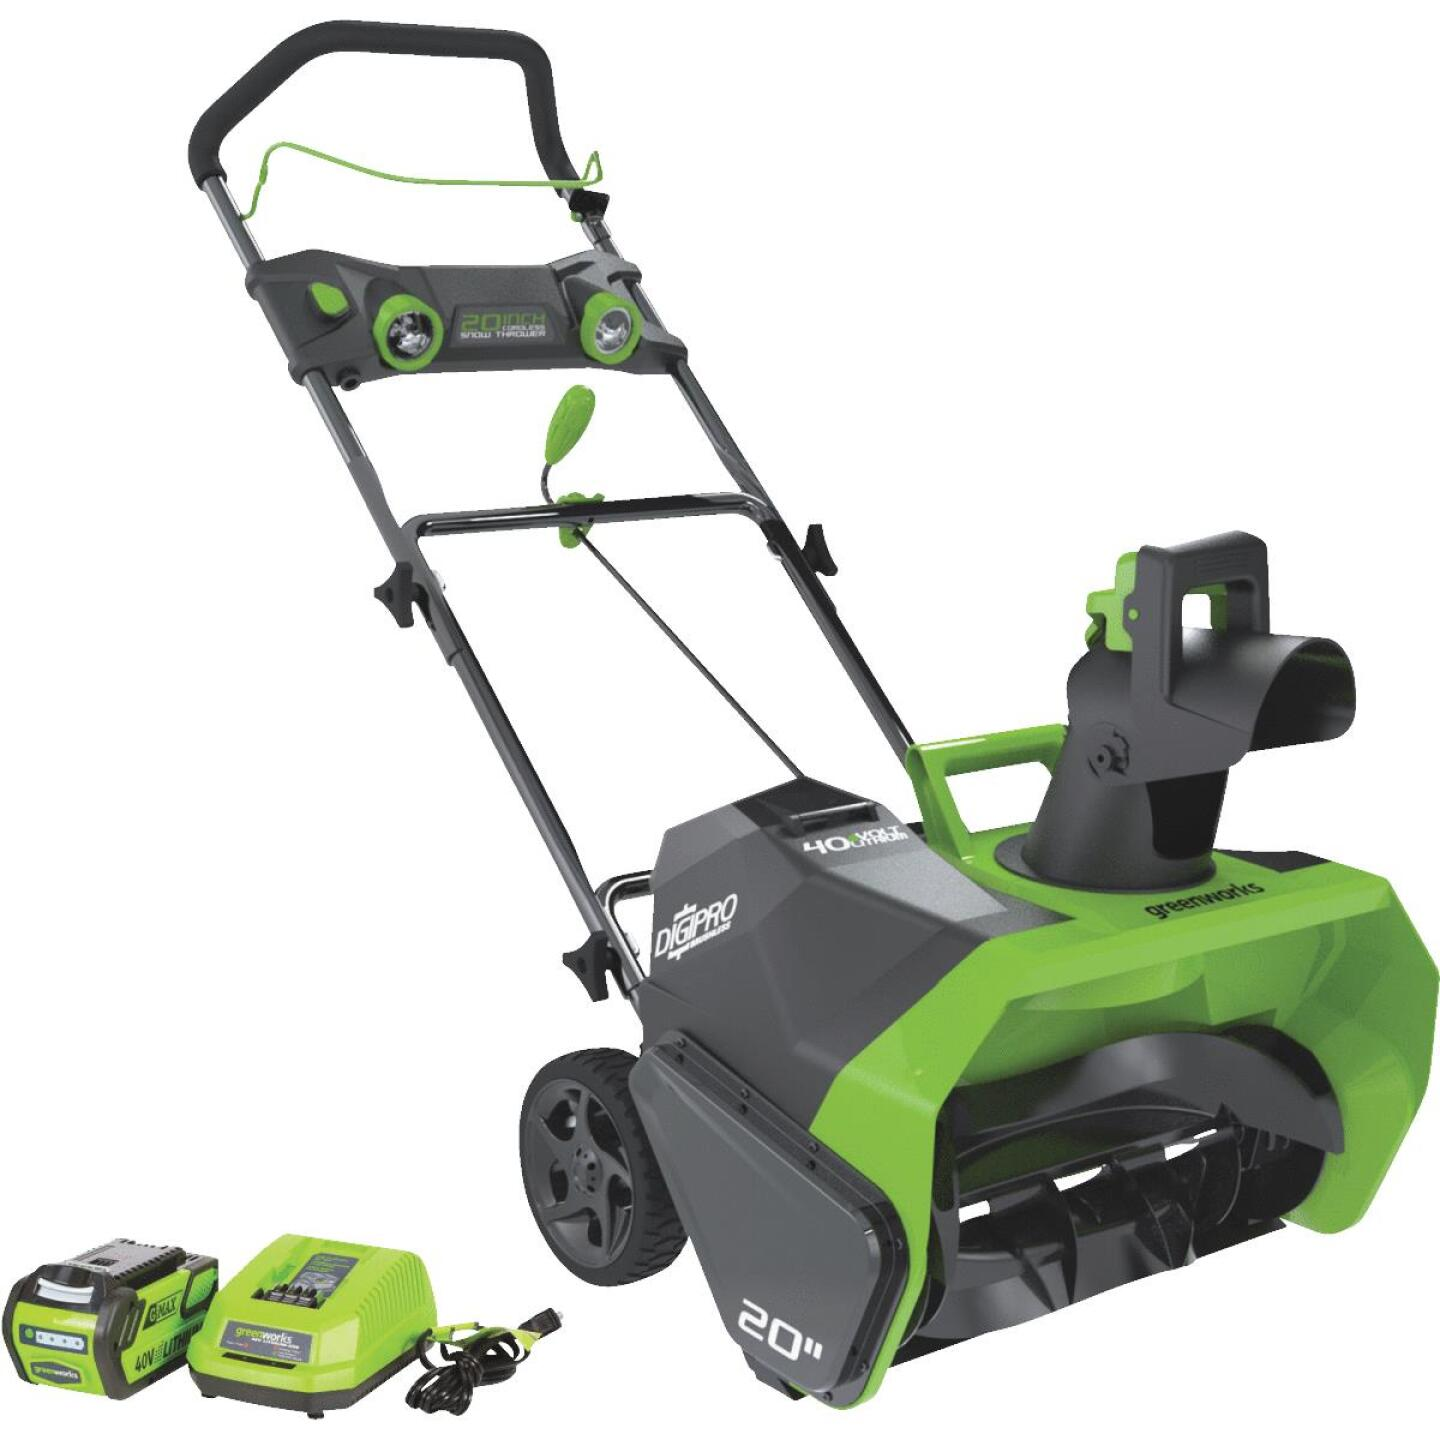 Greenworks DigiPro G-MAX 20 In. 40V Cordless Snow Blower Image 1